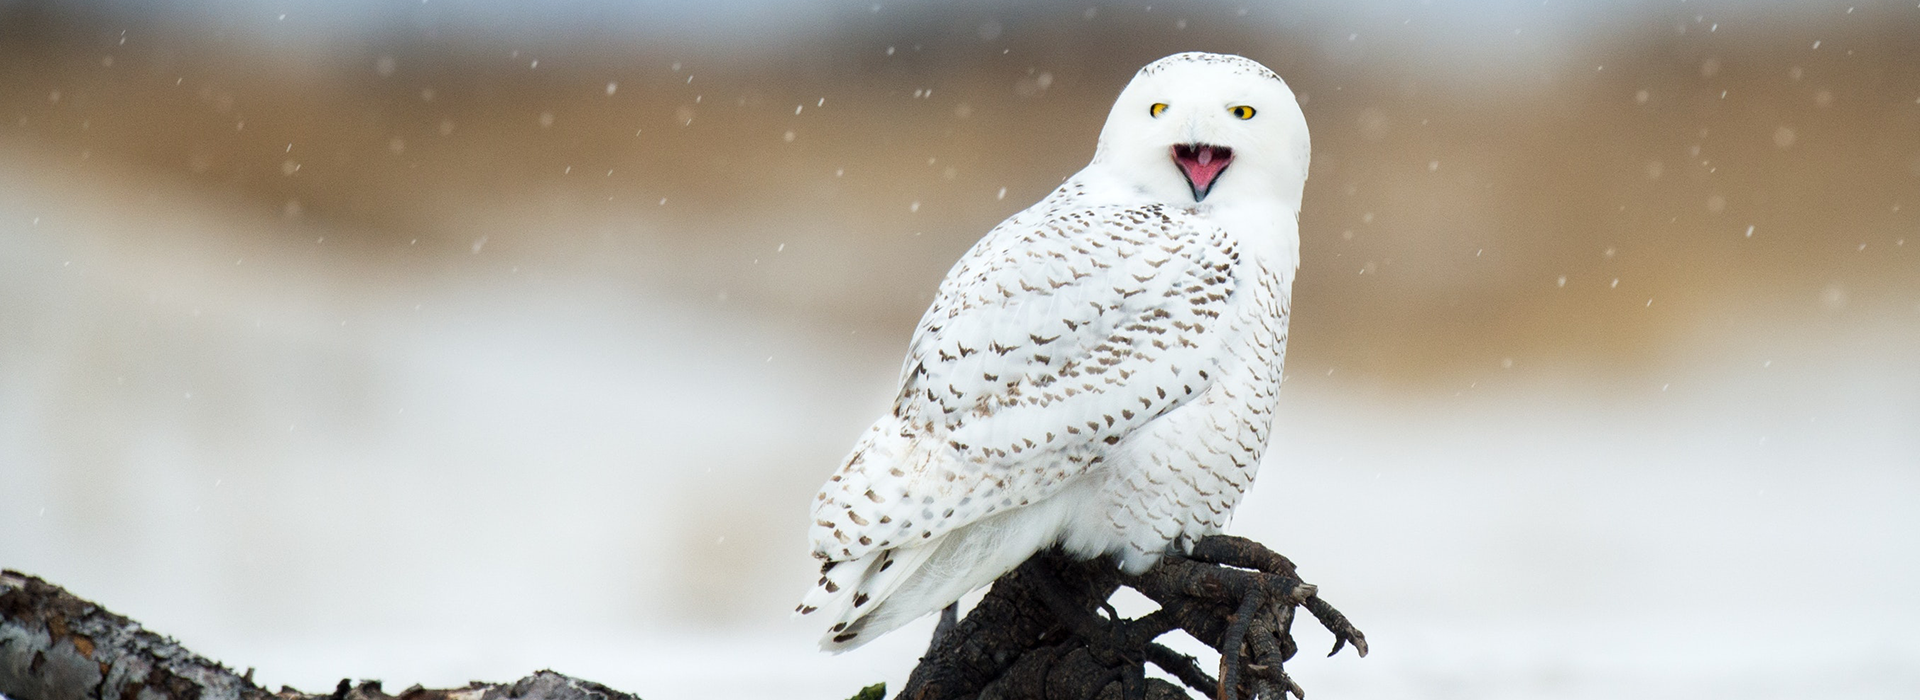 snowy owl perched on a frozen branch